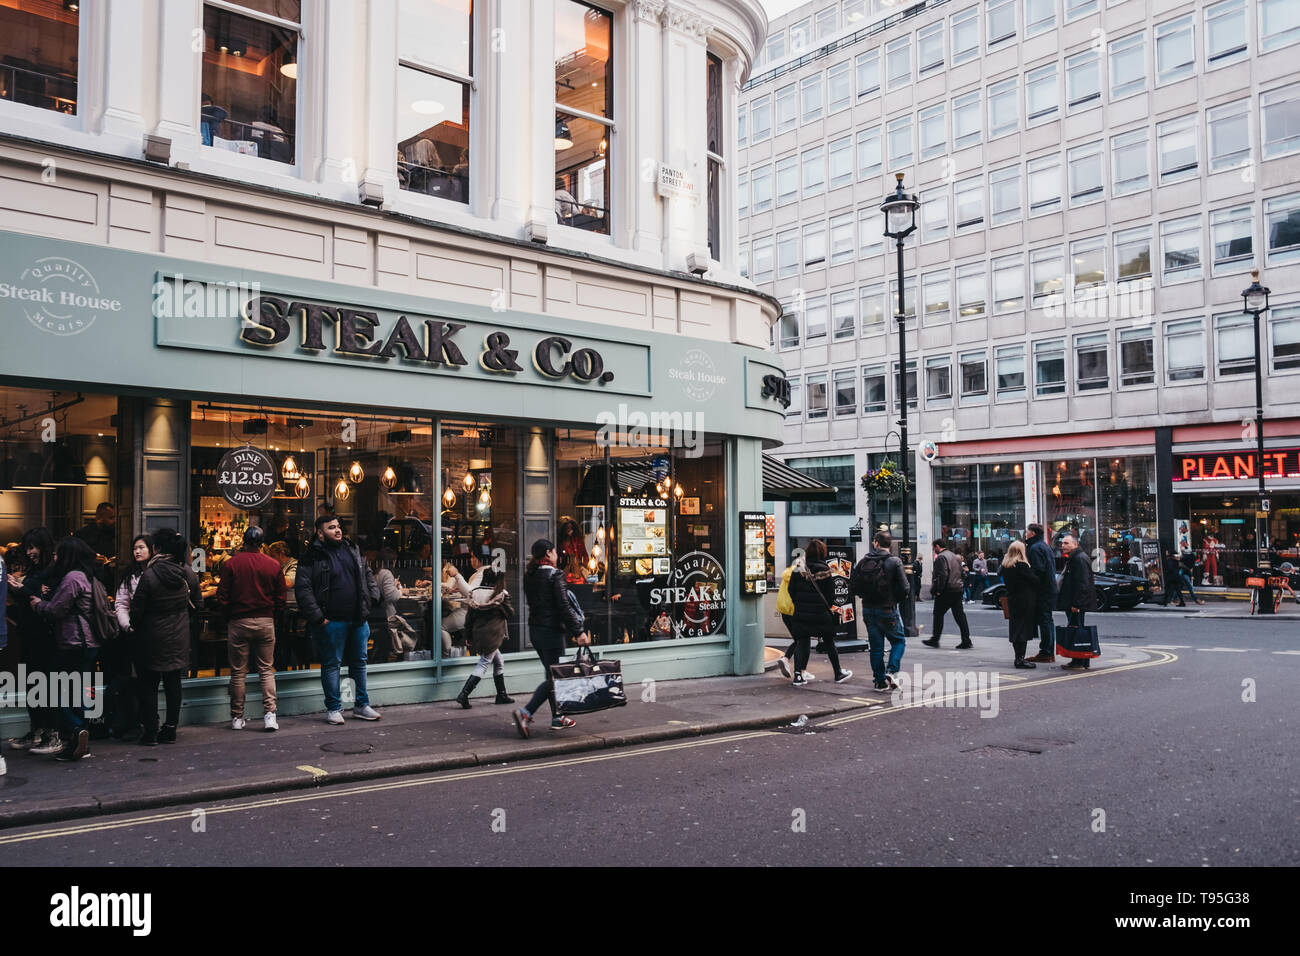 London, UK - April 14, 2019: People walking past Steak & Co restaurant on the corner of Haymarket, a street in the St. James's area of London, famous  Stock Photo